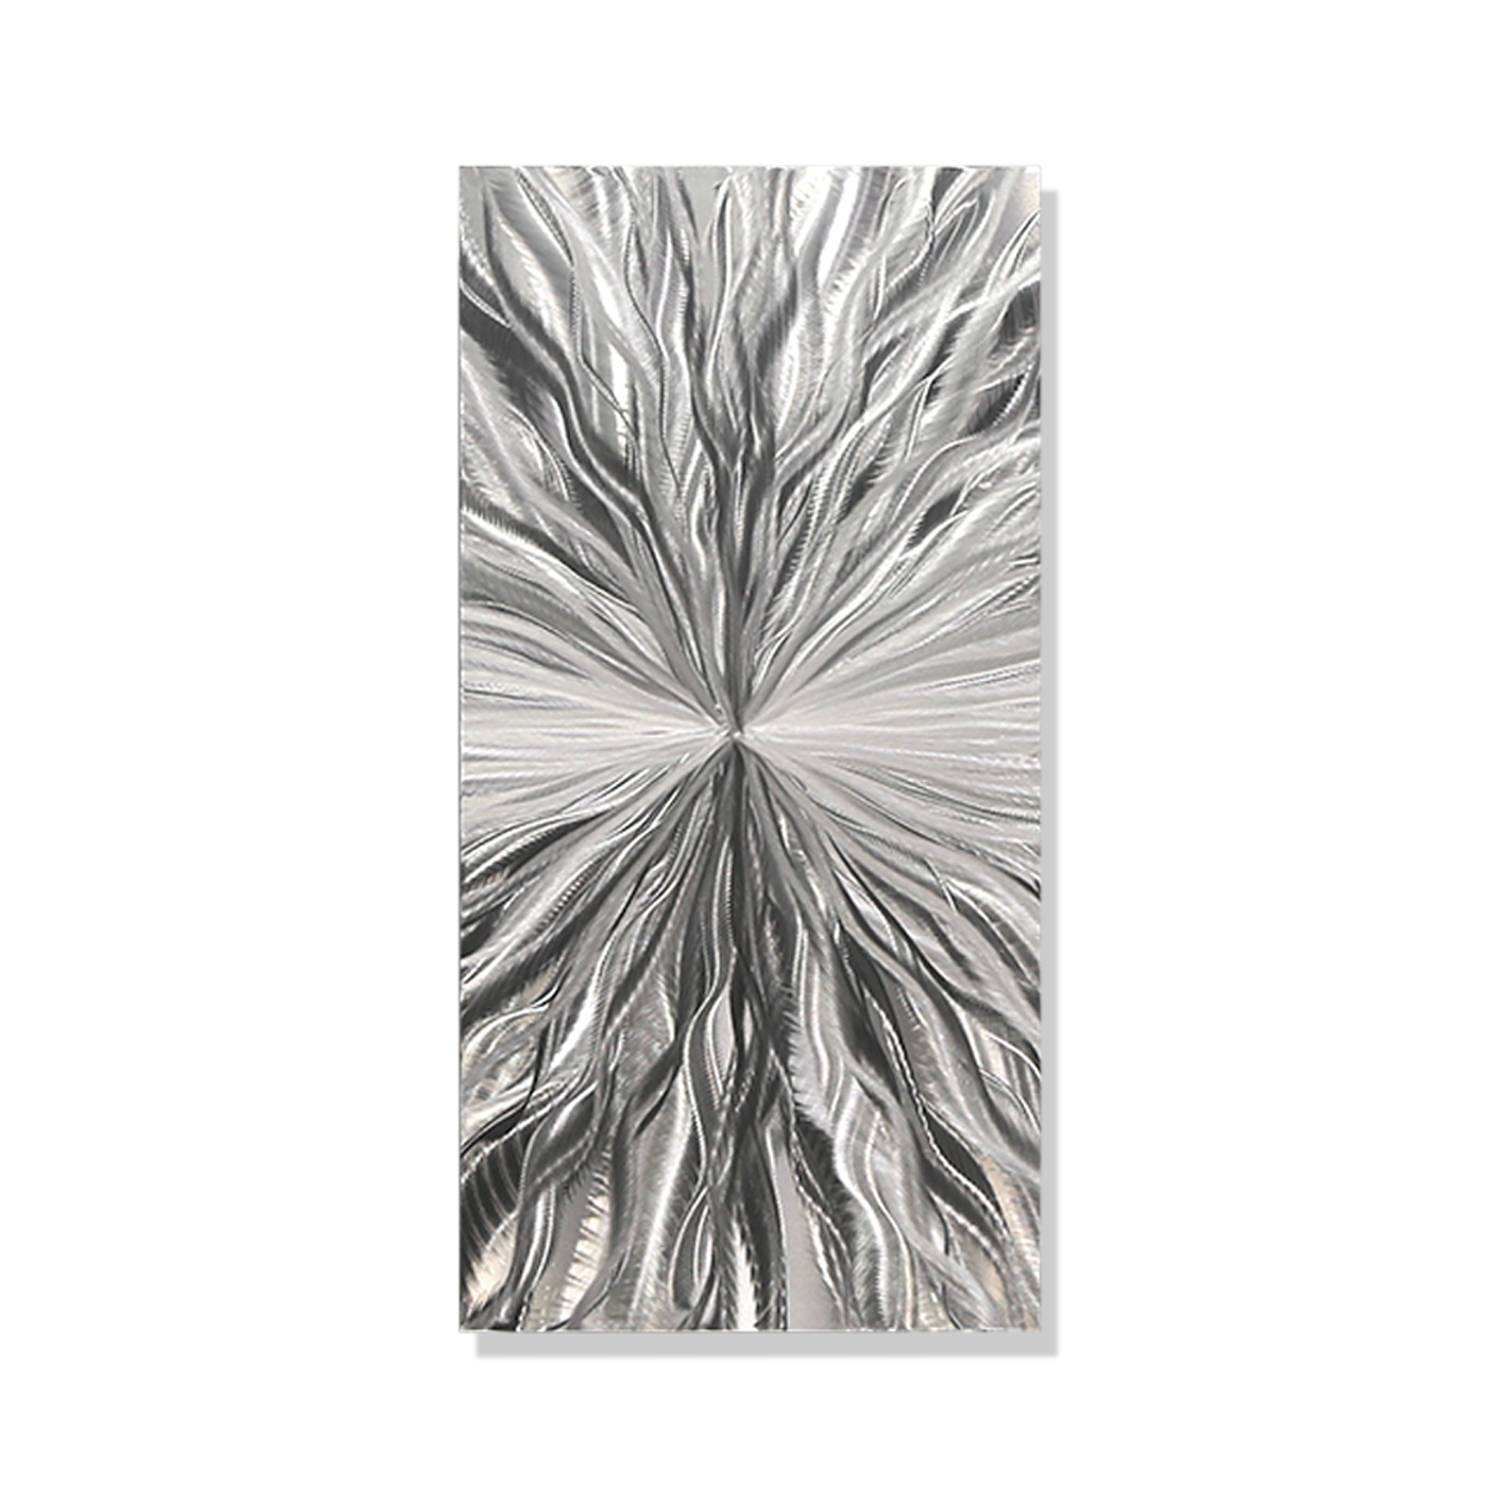 Vitality Solo – Silver Metal Wall Art – Single Panel Wall Décor Regarding Most Up To Date Silver Metal Wall Art (View 15 of 20)